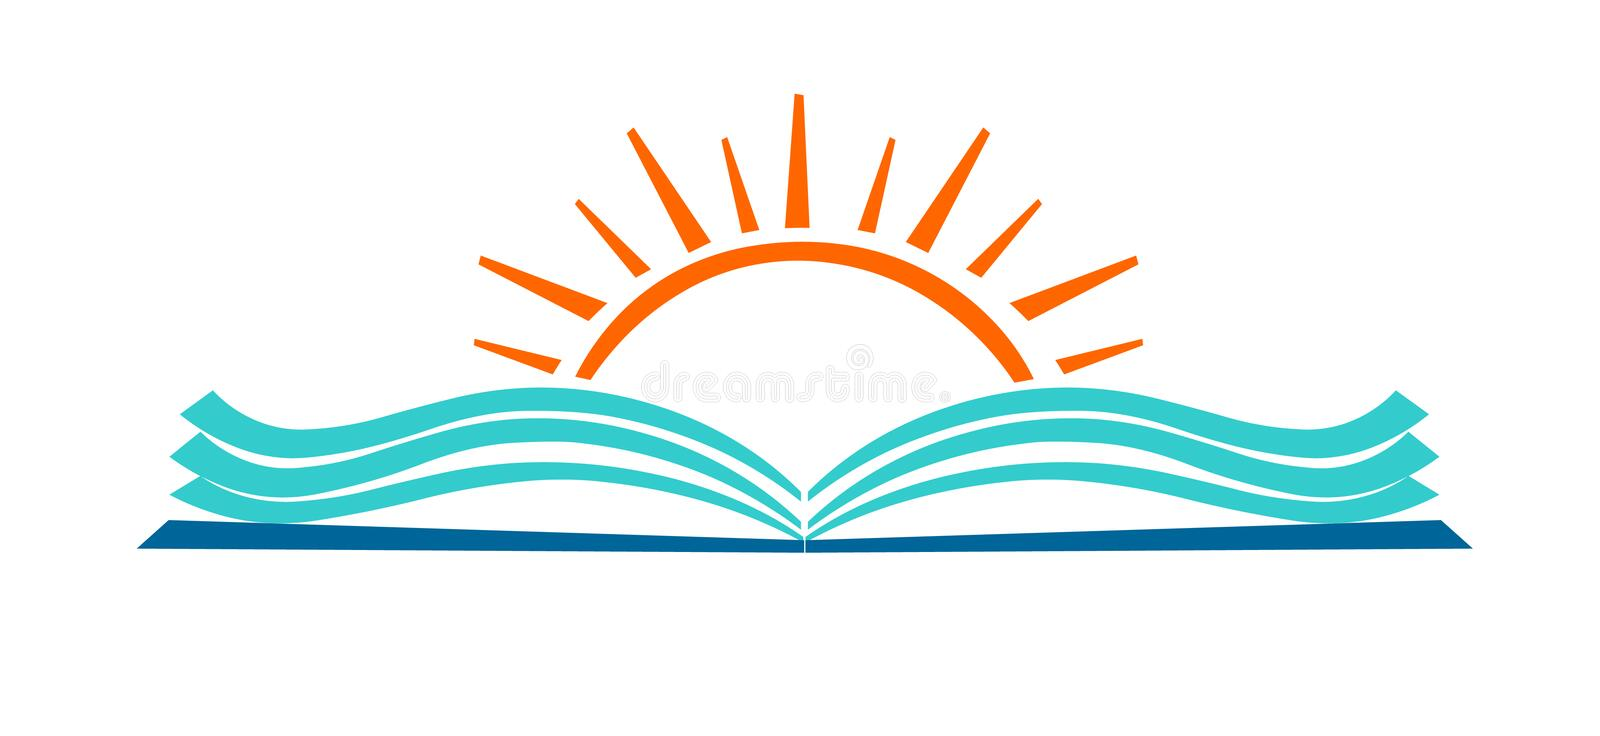 Open book and sun education logo icon. vector illustration